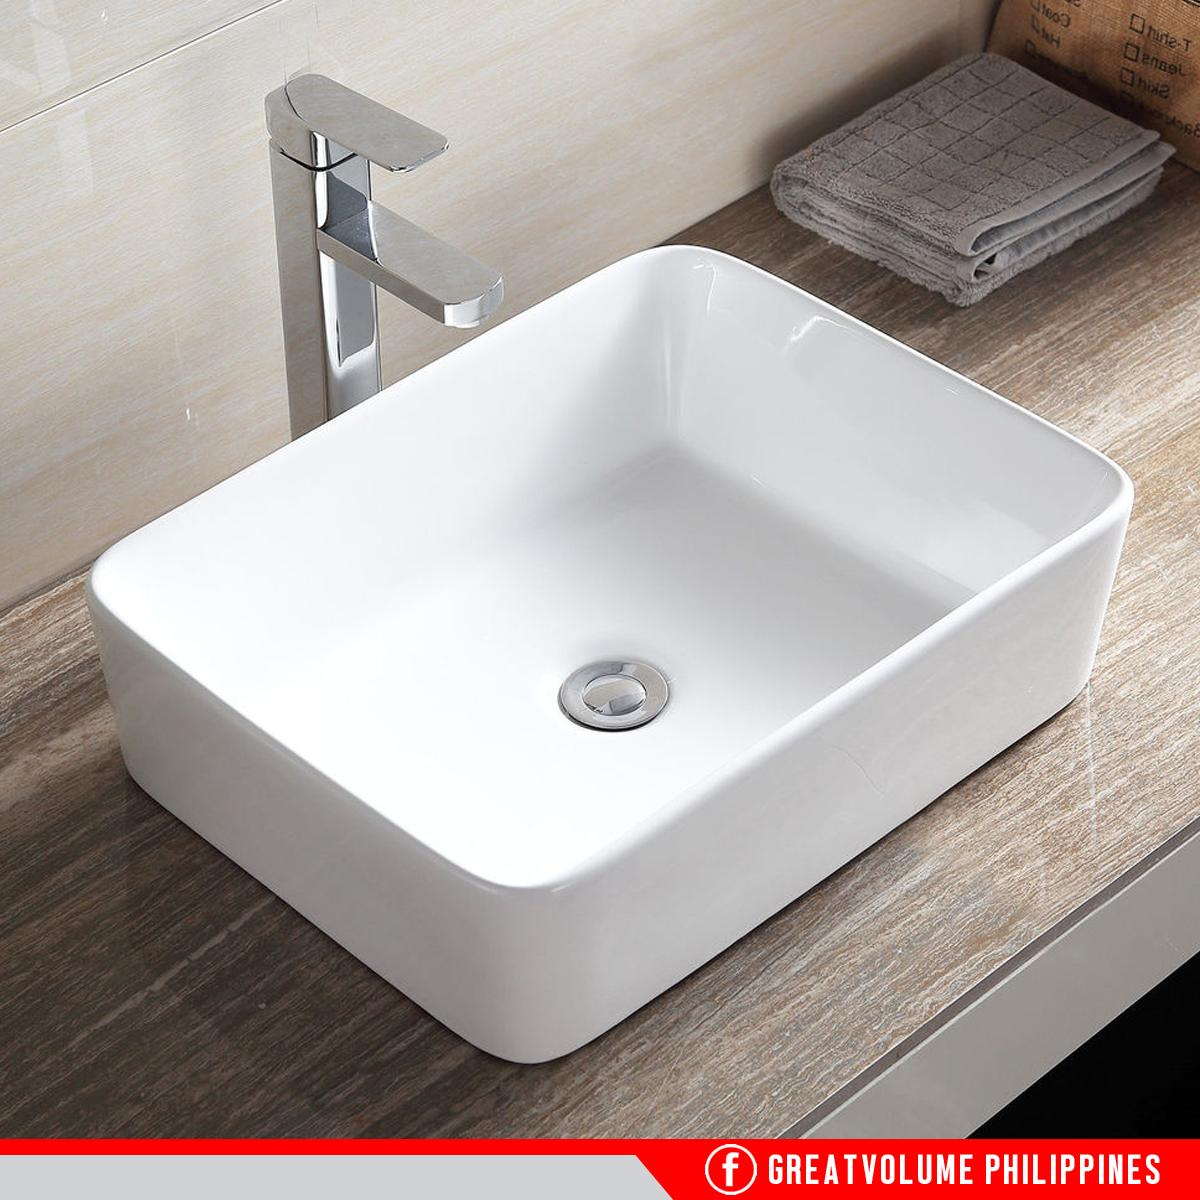 Gv 105a Counter Basin By Greatvolume Philippines.